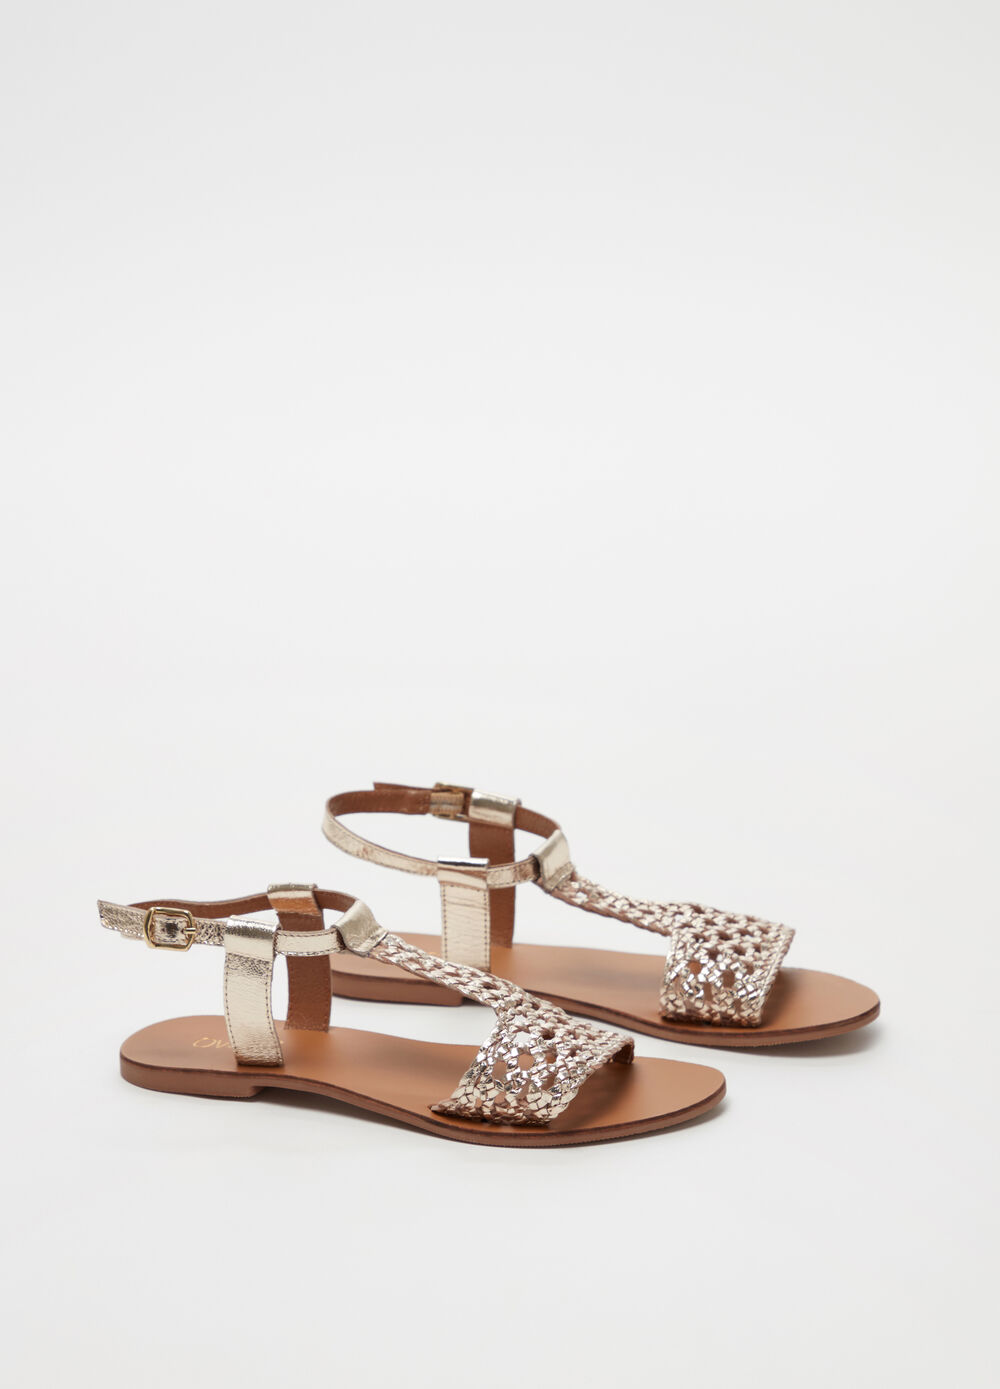 Metallic leather sandal with openwork design